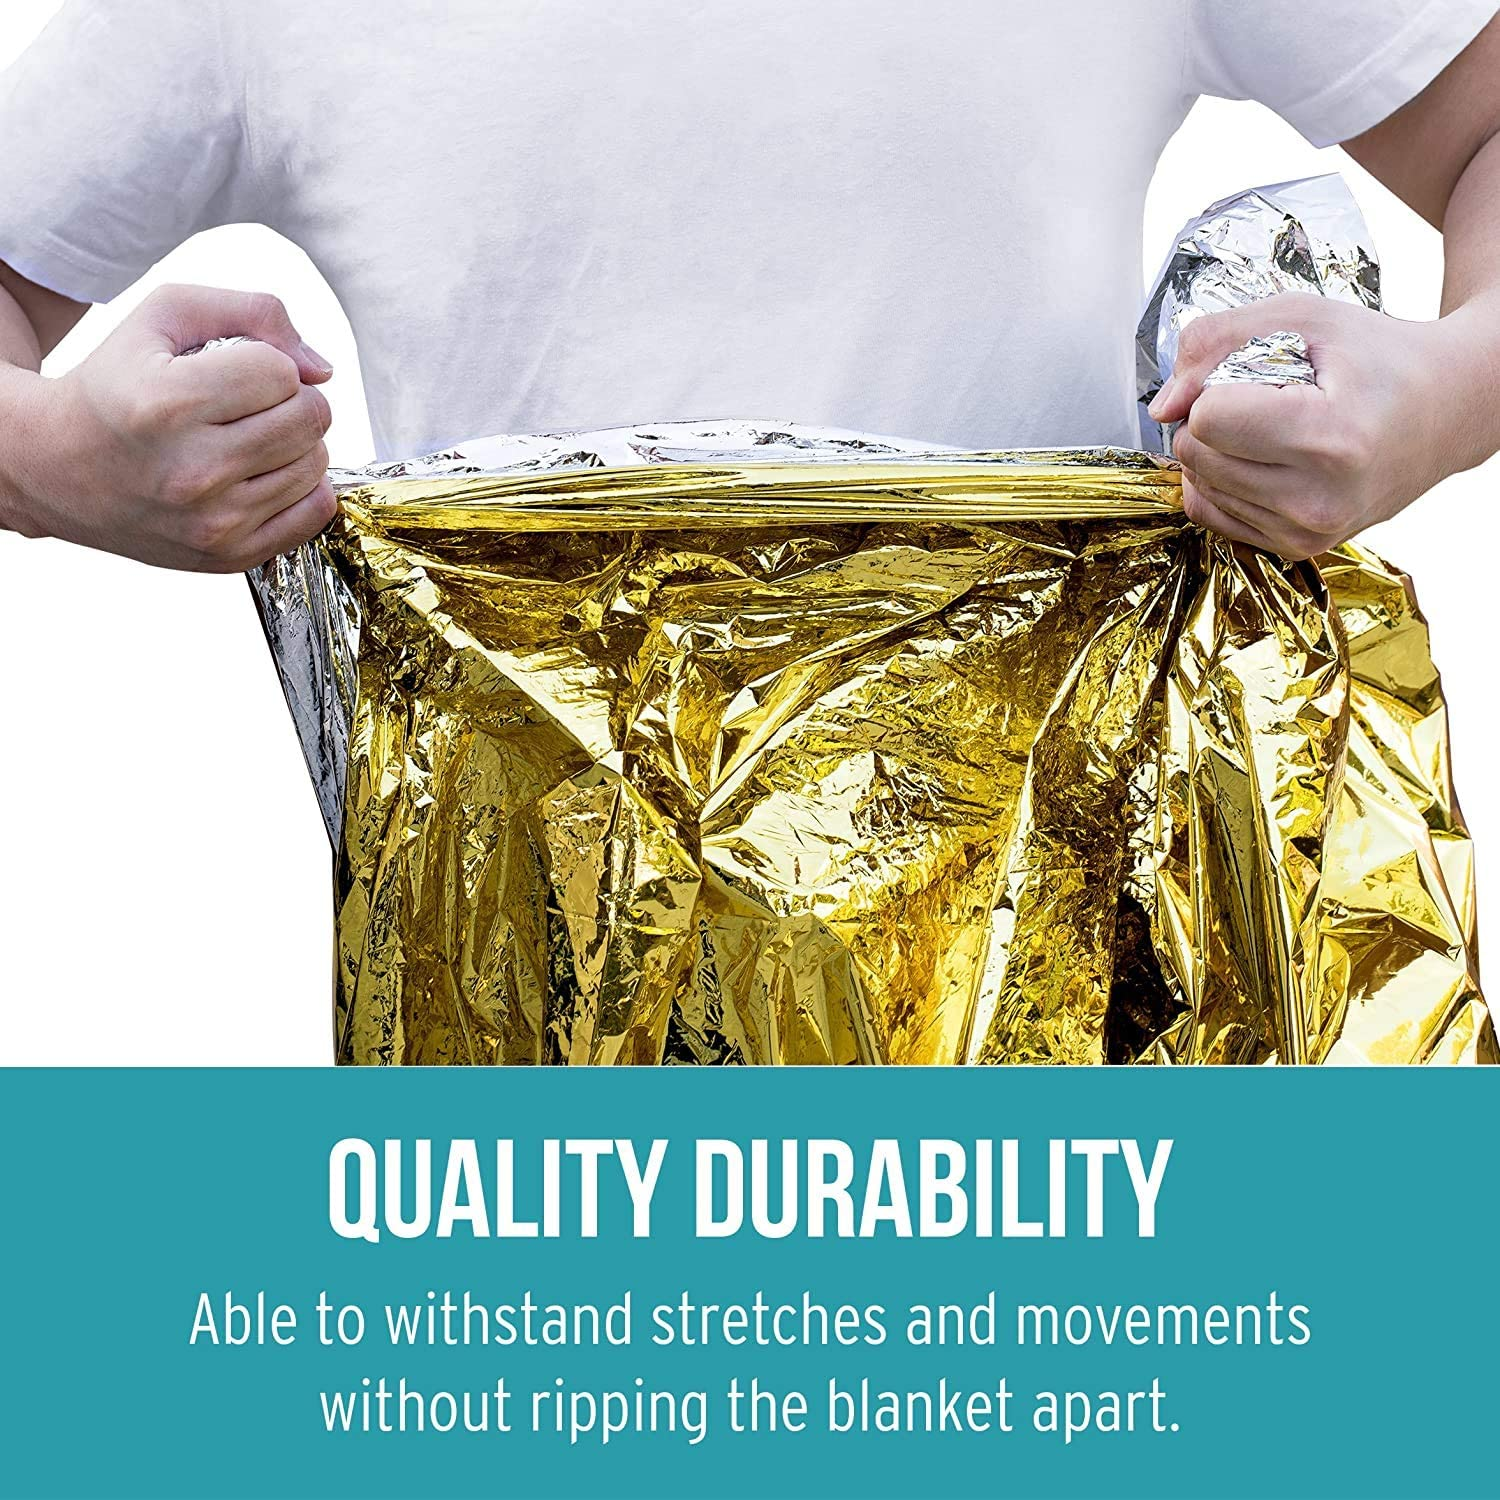 Marathon Running Prepper 4 Pack Extra Large Thermal Mylar Foil Space Blanket Heat Sheets for Camping Bug Out /& Outdoor Survival Gear Hiking ROYAL WIND Emergency Blankets First Aid Kits